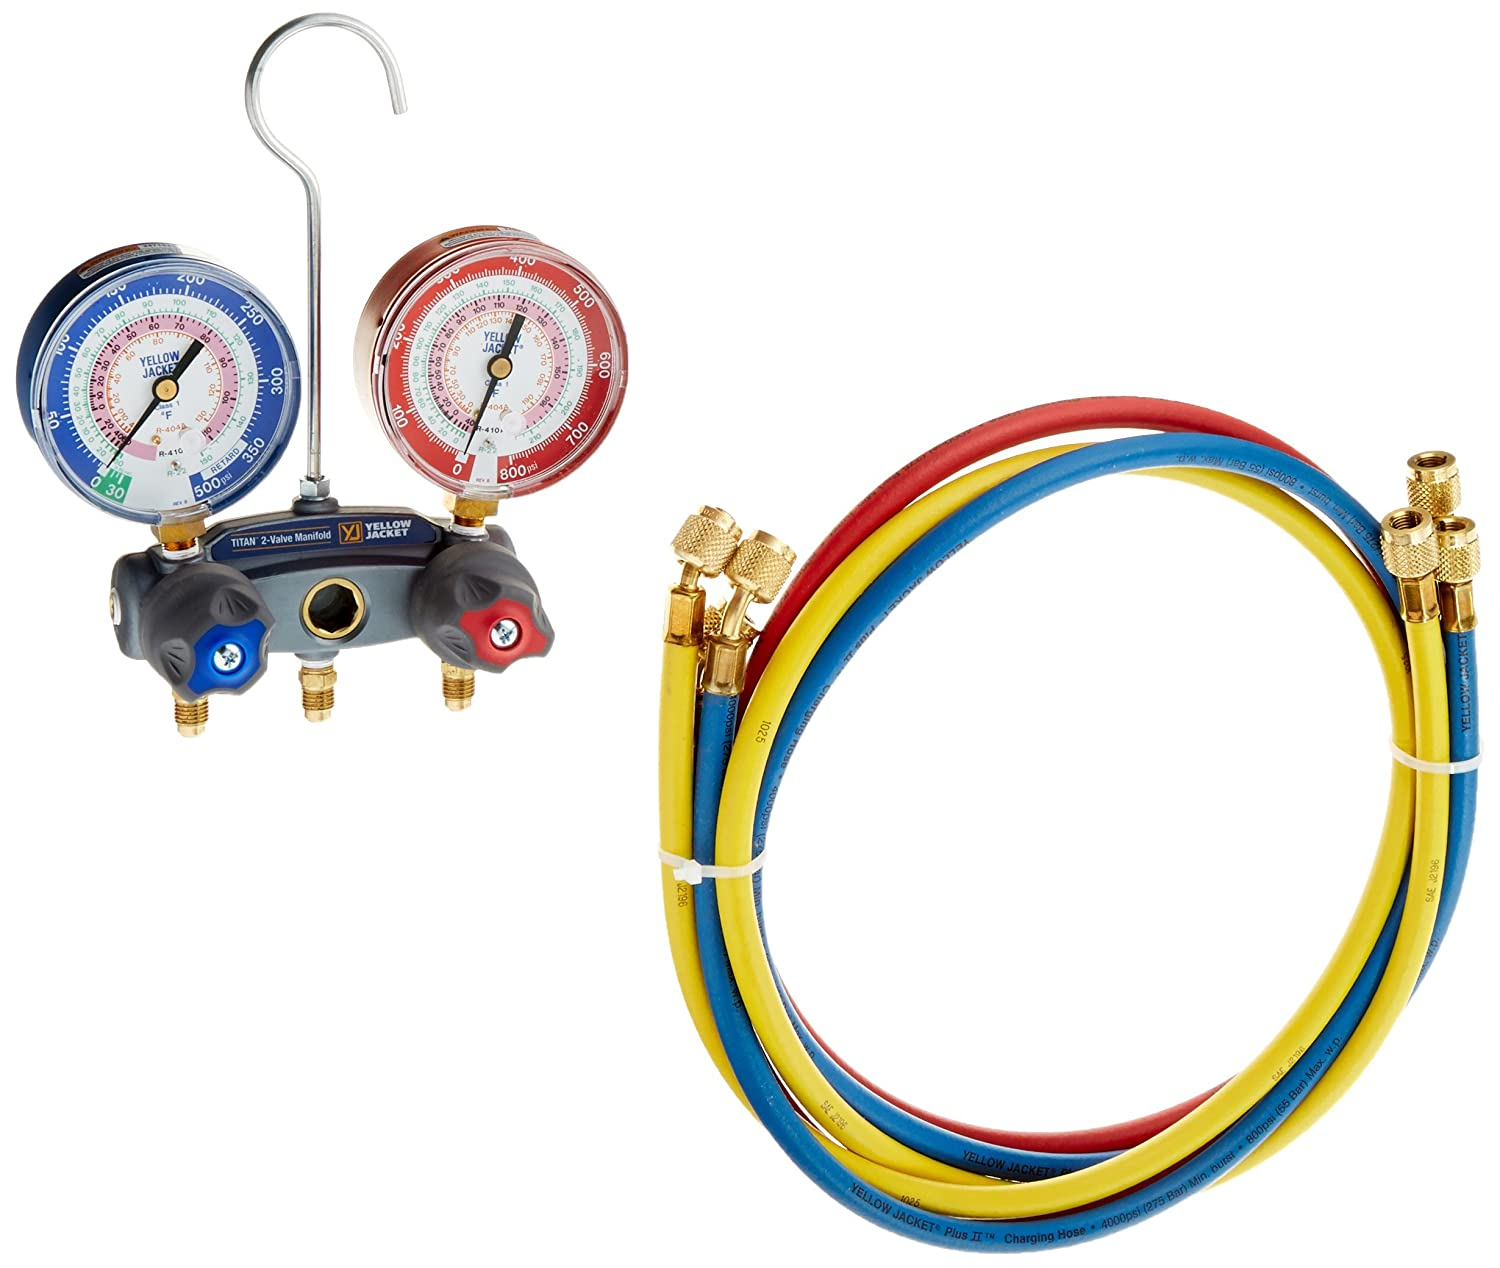 Yellow Jacket 49867 Titan 2-Valve Test and Charging Manifold degrees F, psi Scale, R-22/404A/410A Refrigerant, Red/Blue Gauges Fotronic Corporation